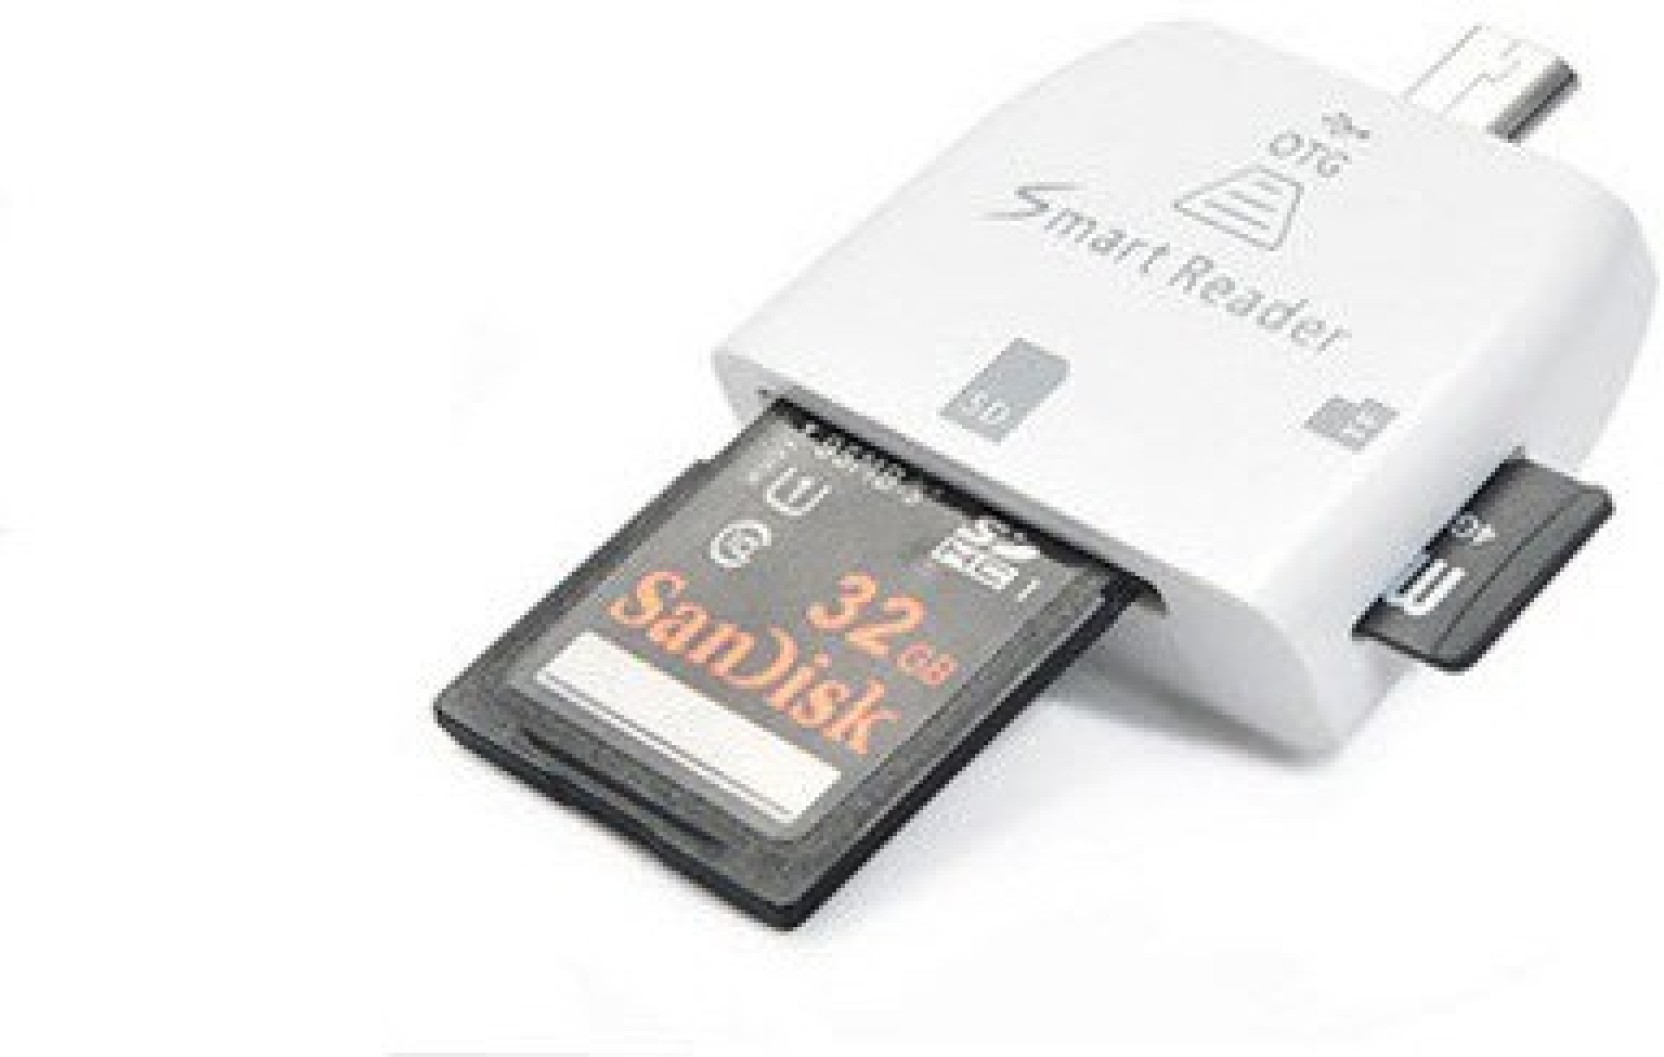 Bb4 Micro Usb Tf Sd Otg Smart Card Reader Price In India Buy Connection Kit Sdhc On Offer